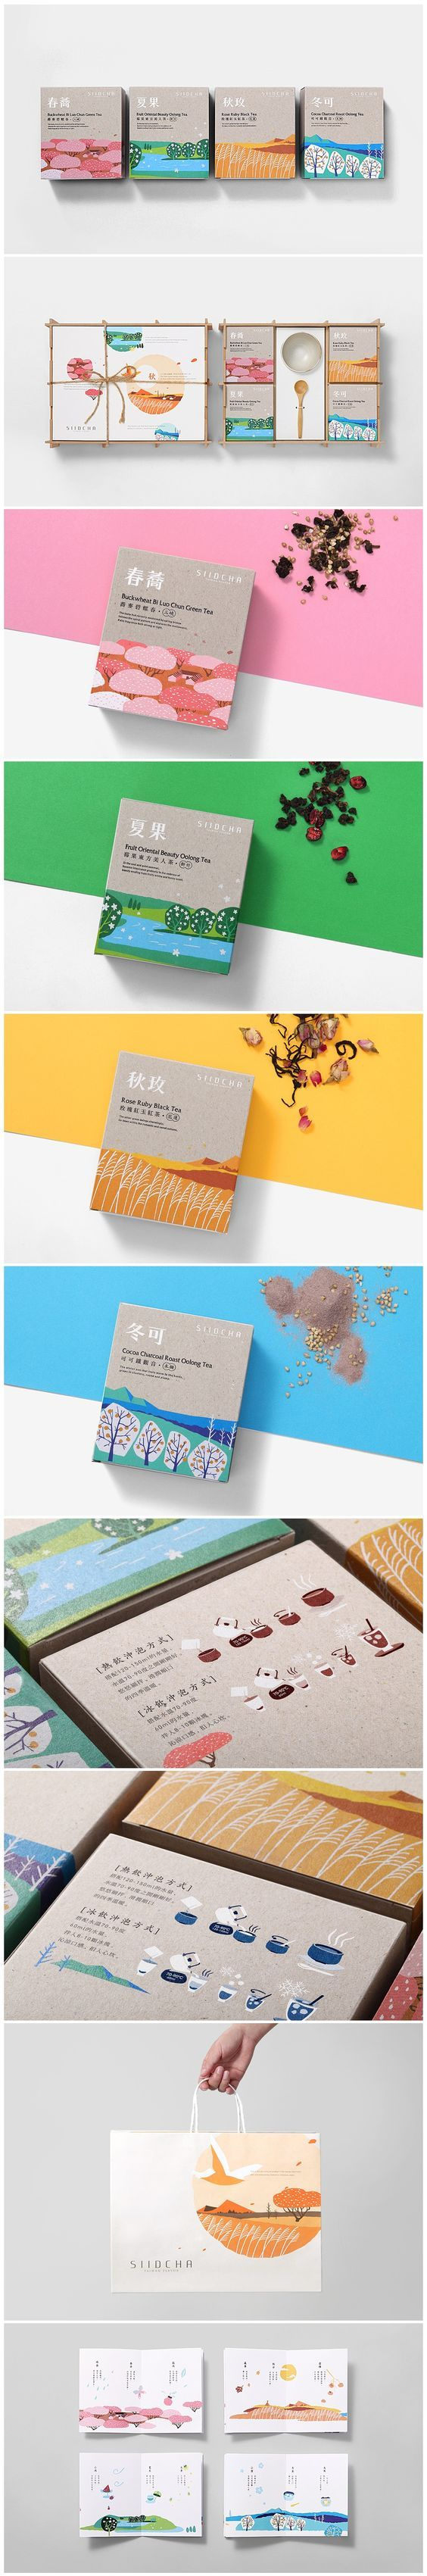 Siidcha Four Season Tea Packaging by Victor Branding Design | Fivestar Branding Agency – Design and Branding Agency & Curated Inspiration Gallery